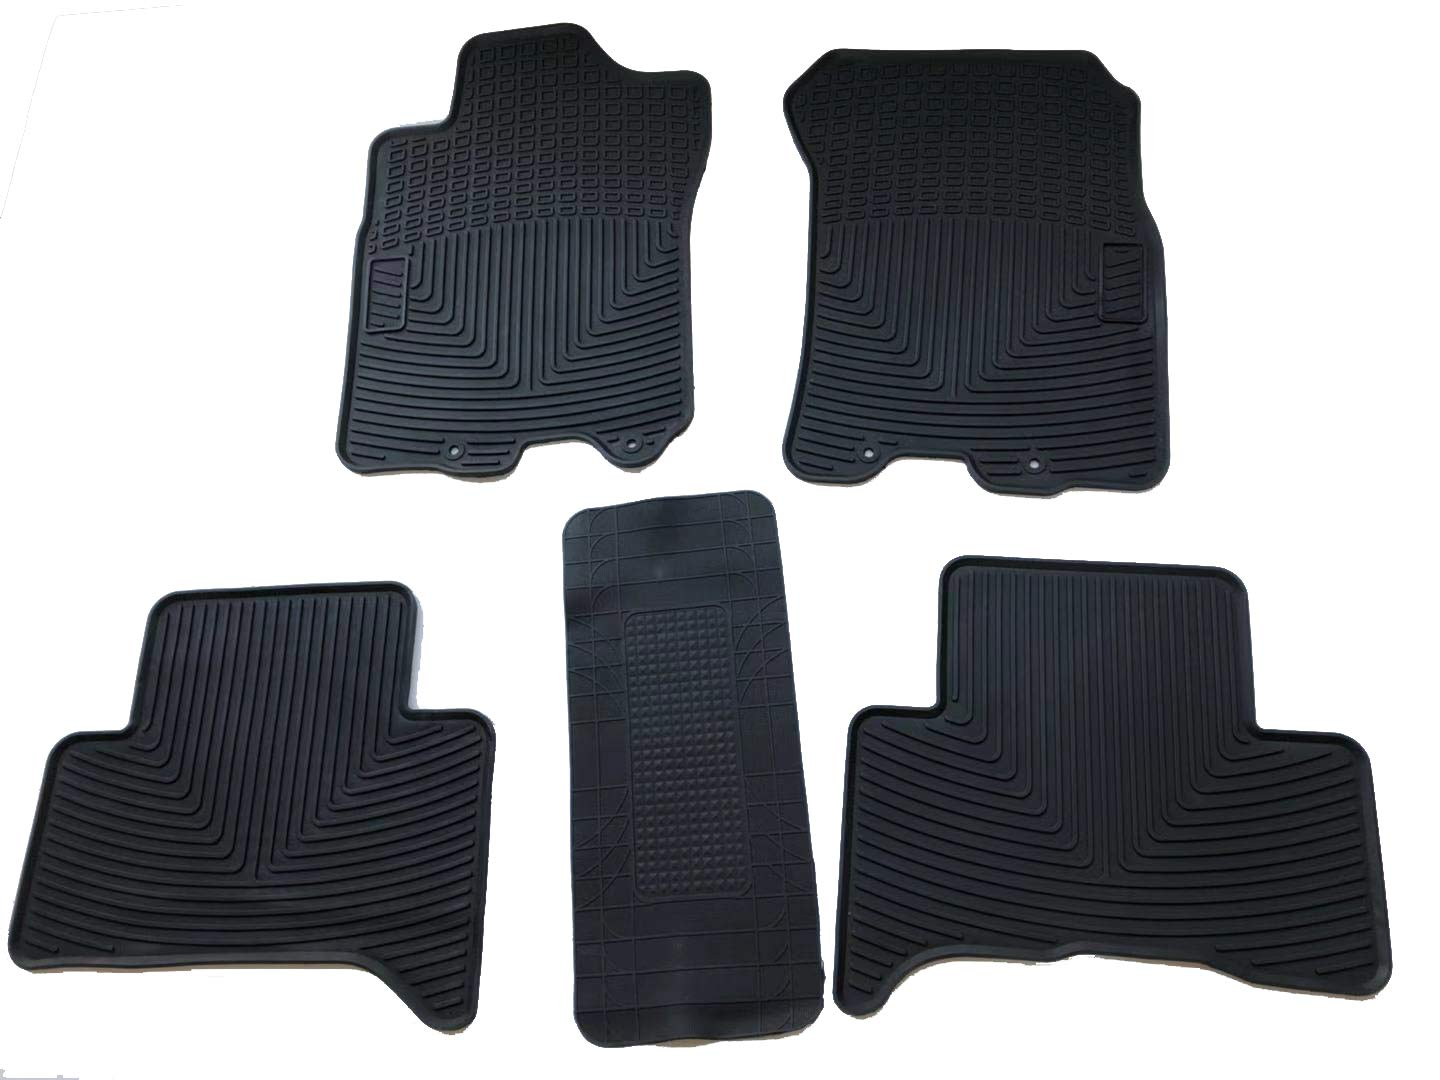 caartonn Rubber Floor Mats All Weather Heavy Duty Trunk Mats fit for Toyota FJ Cruiser 2010 2011 2012 2013 2014 2015 by caartonn